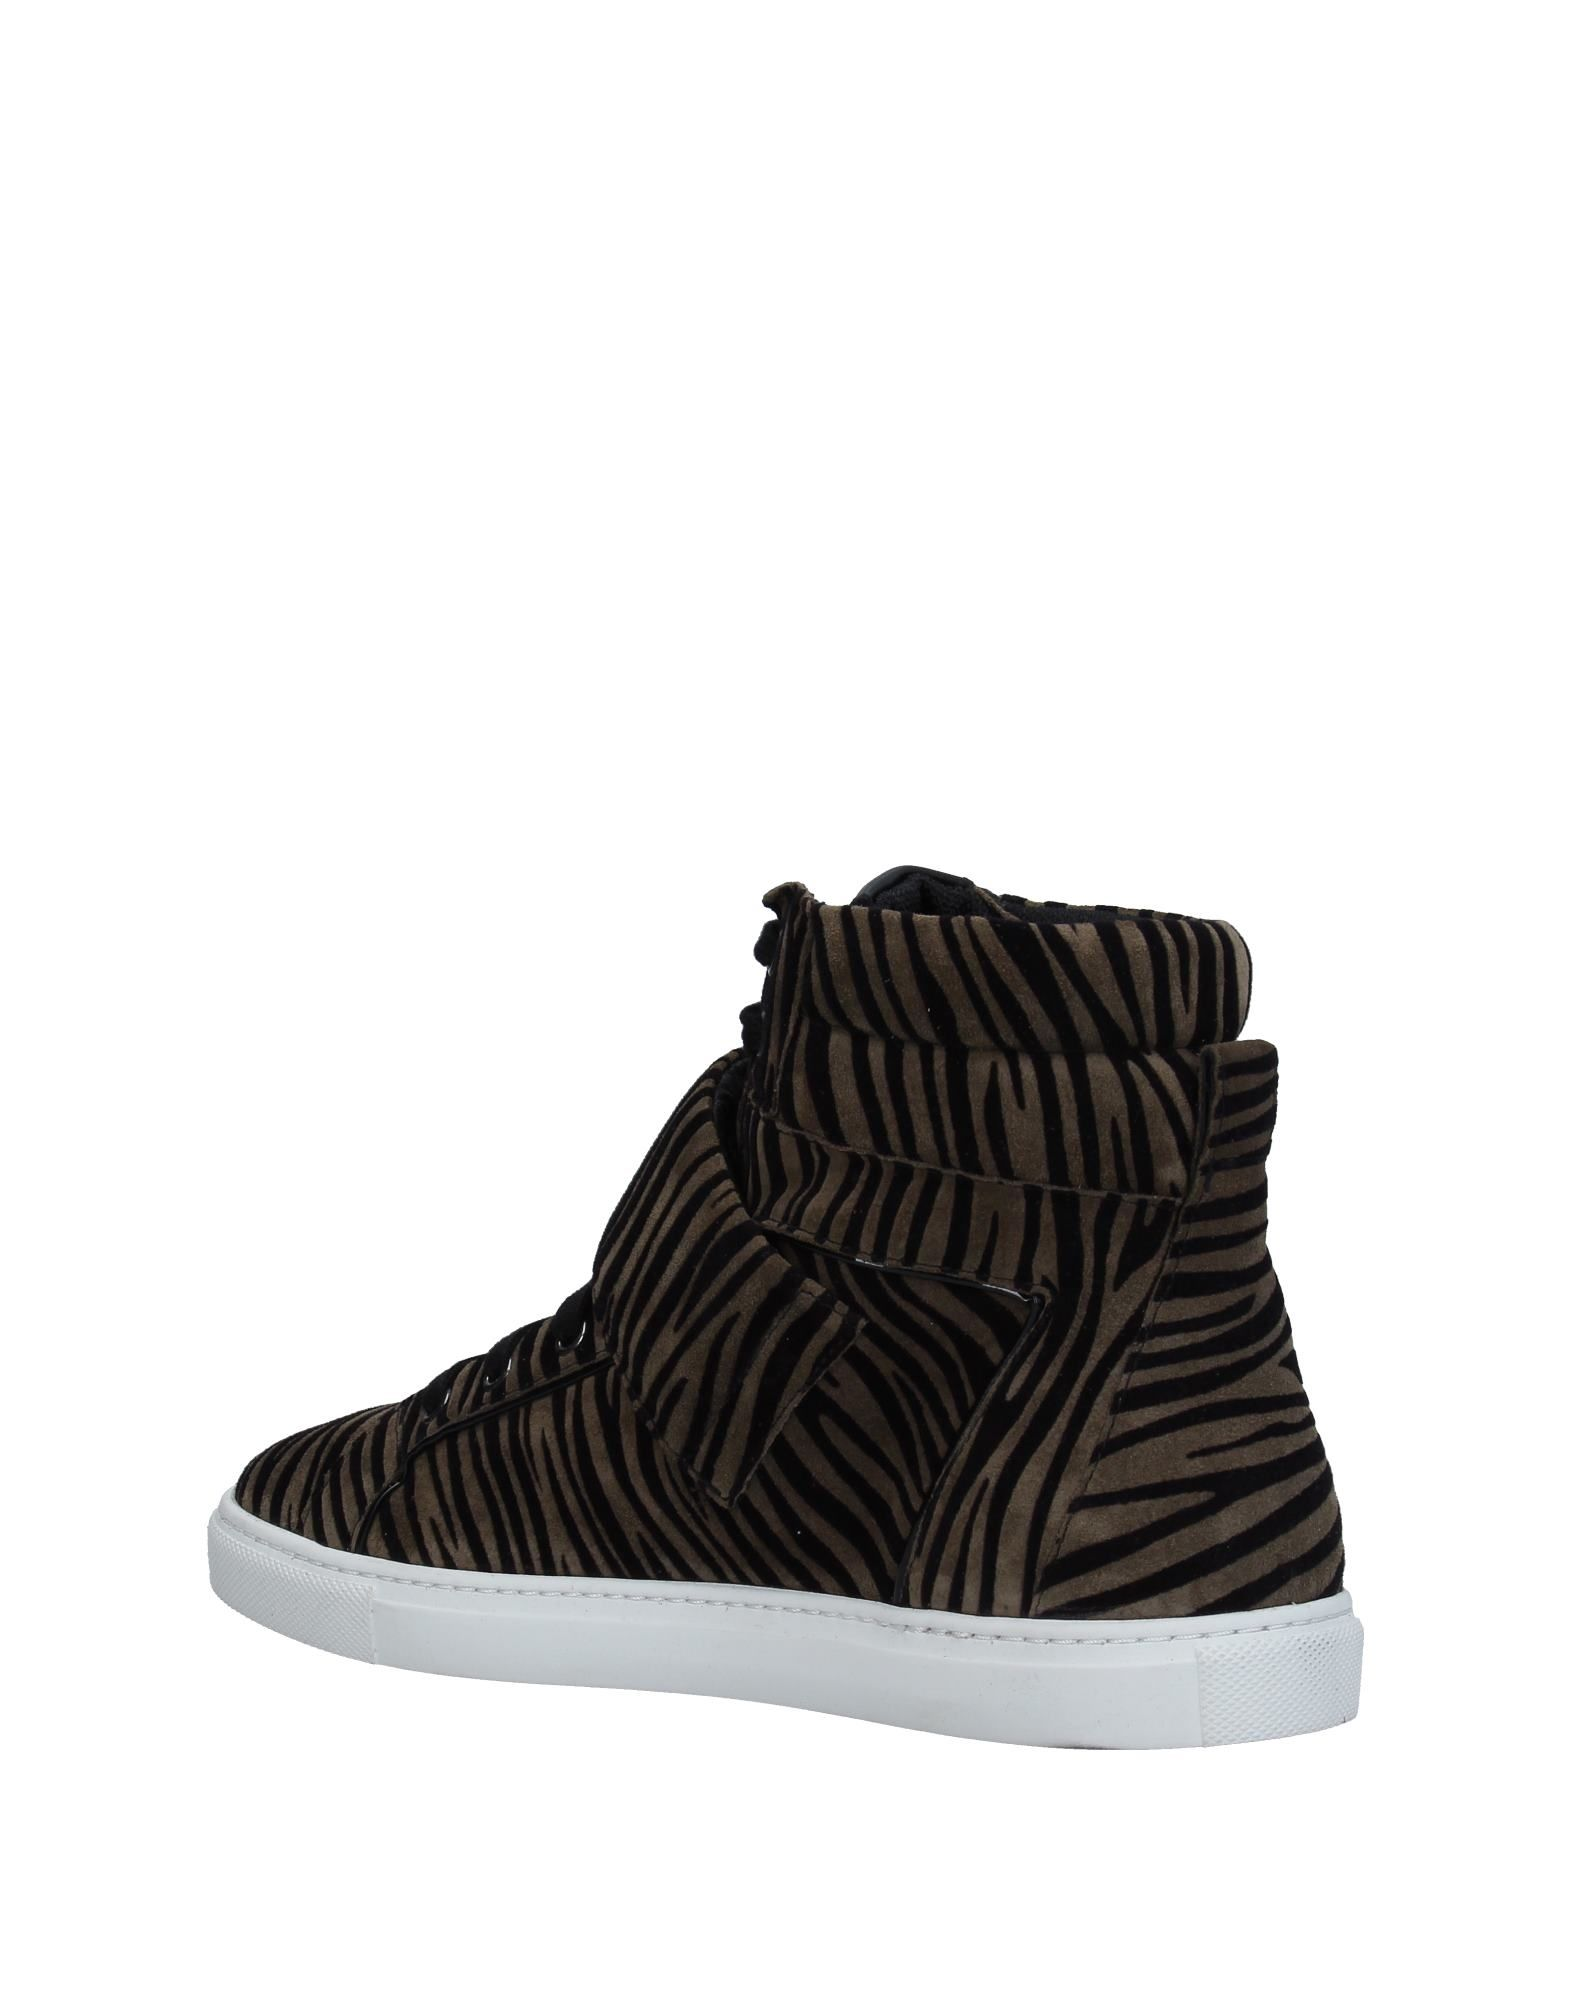 Sneakers Just Cavalli Femme - Sneakers Just Cavalli sur